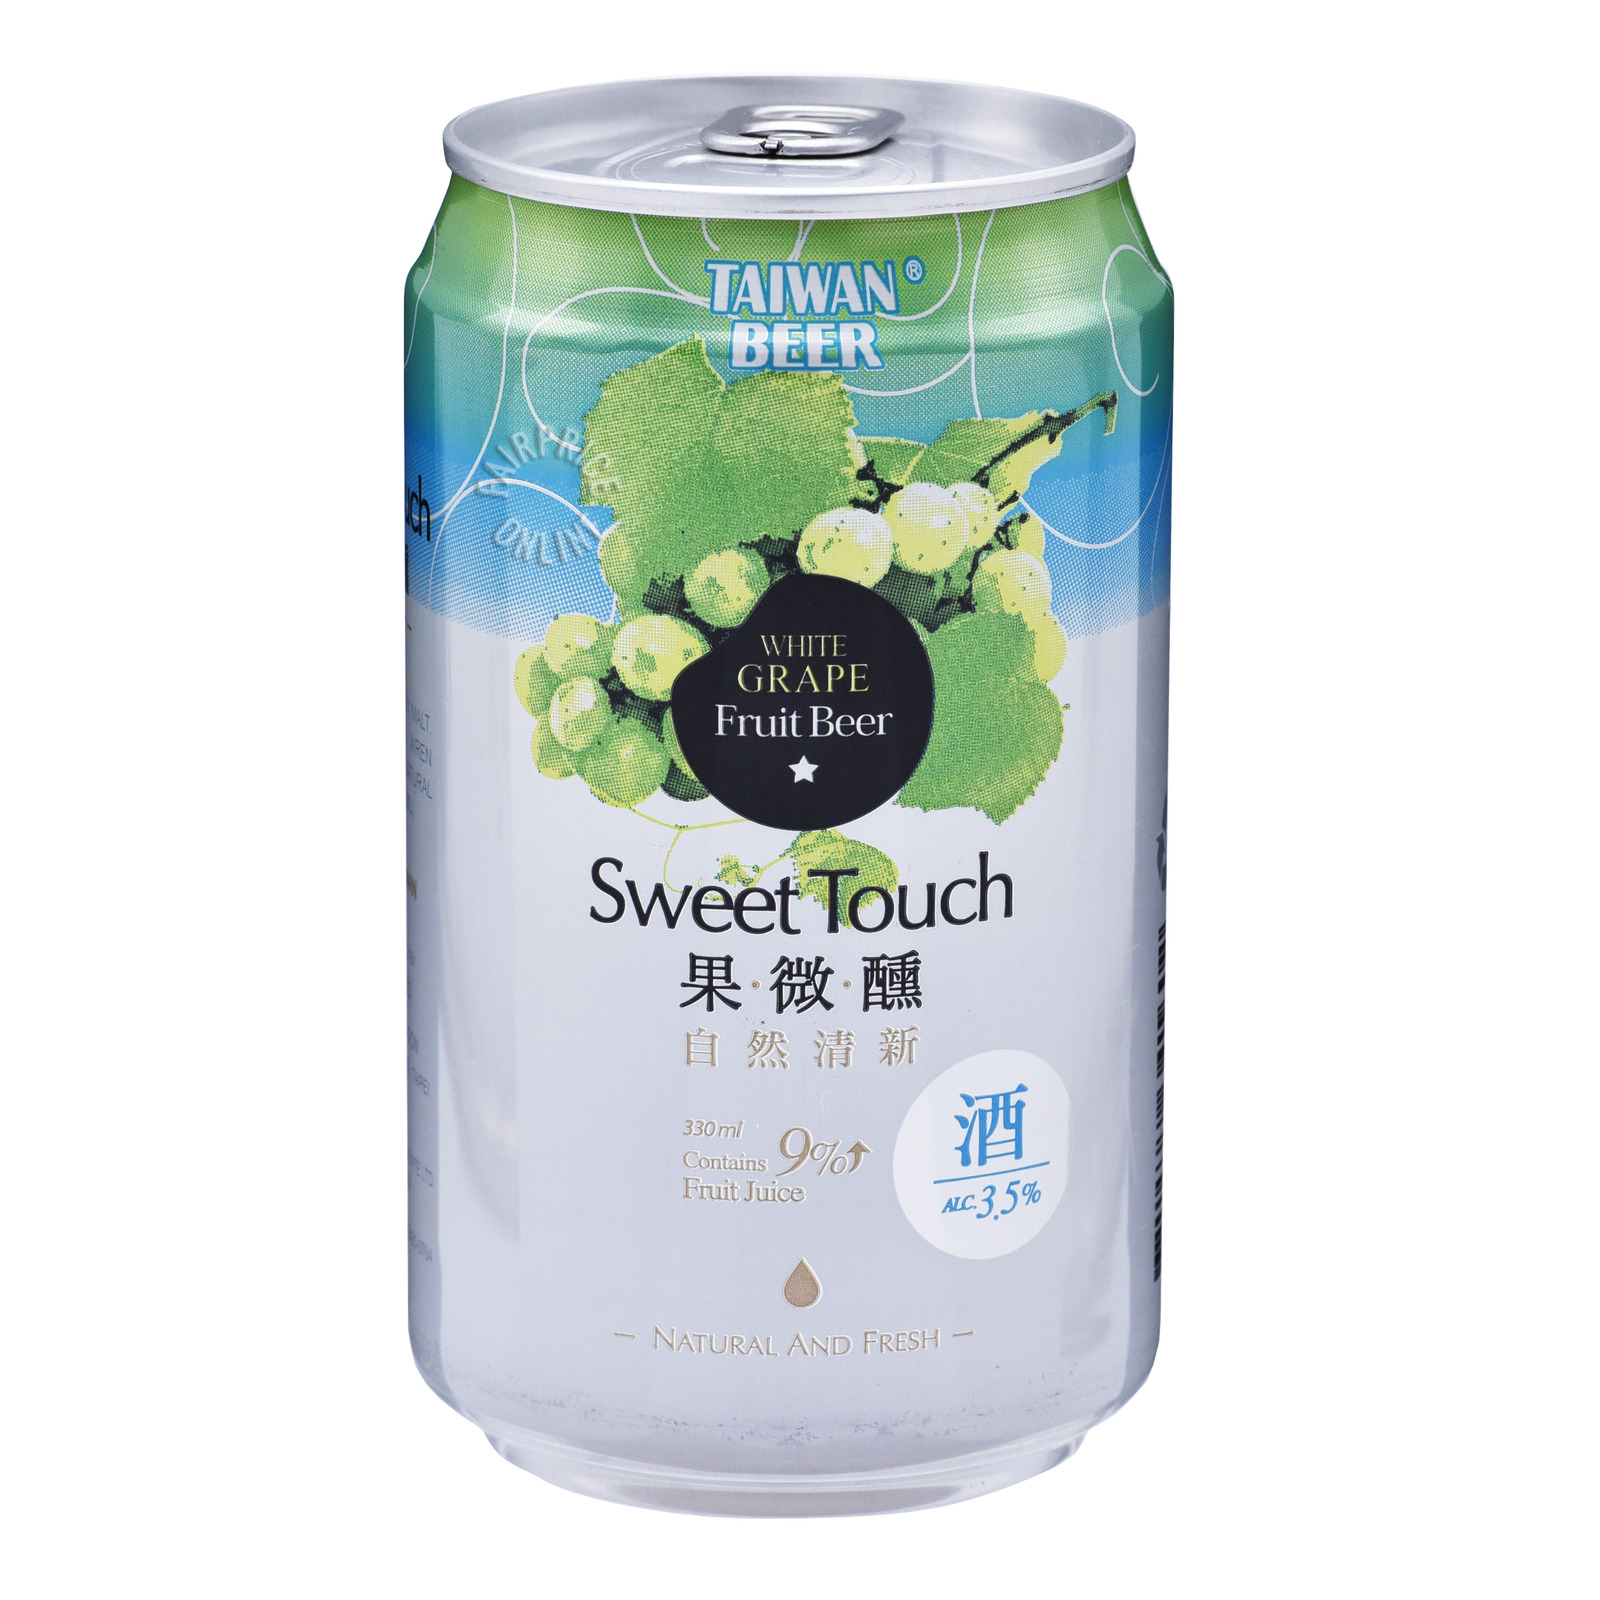 Taiwan Sweet Touch Fruit Can Beer - White Grape